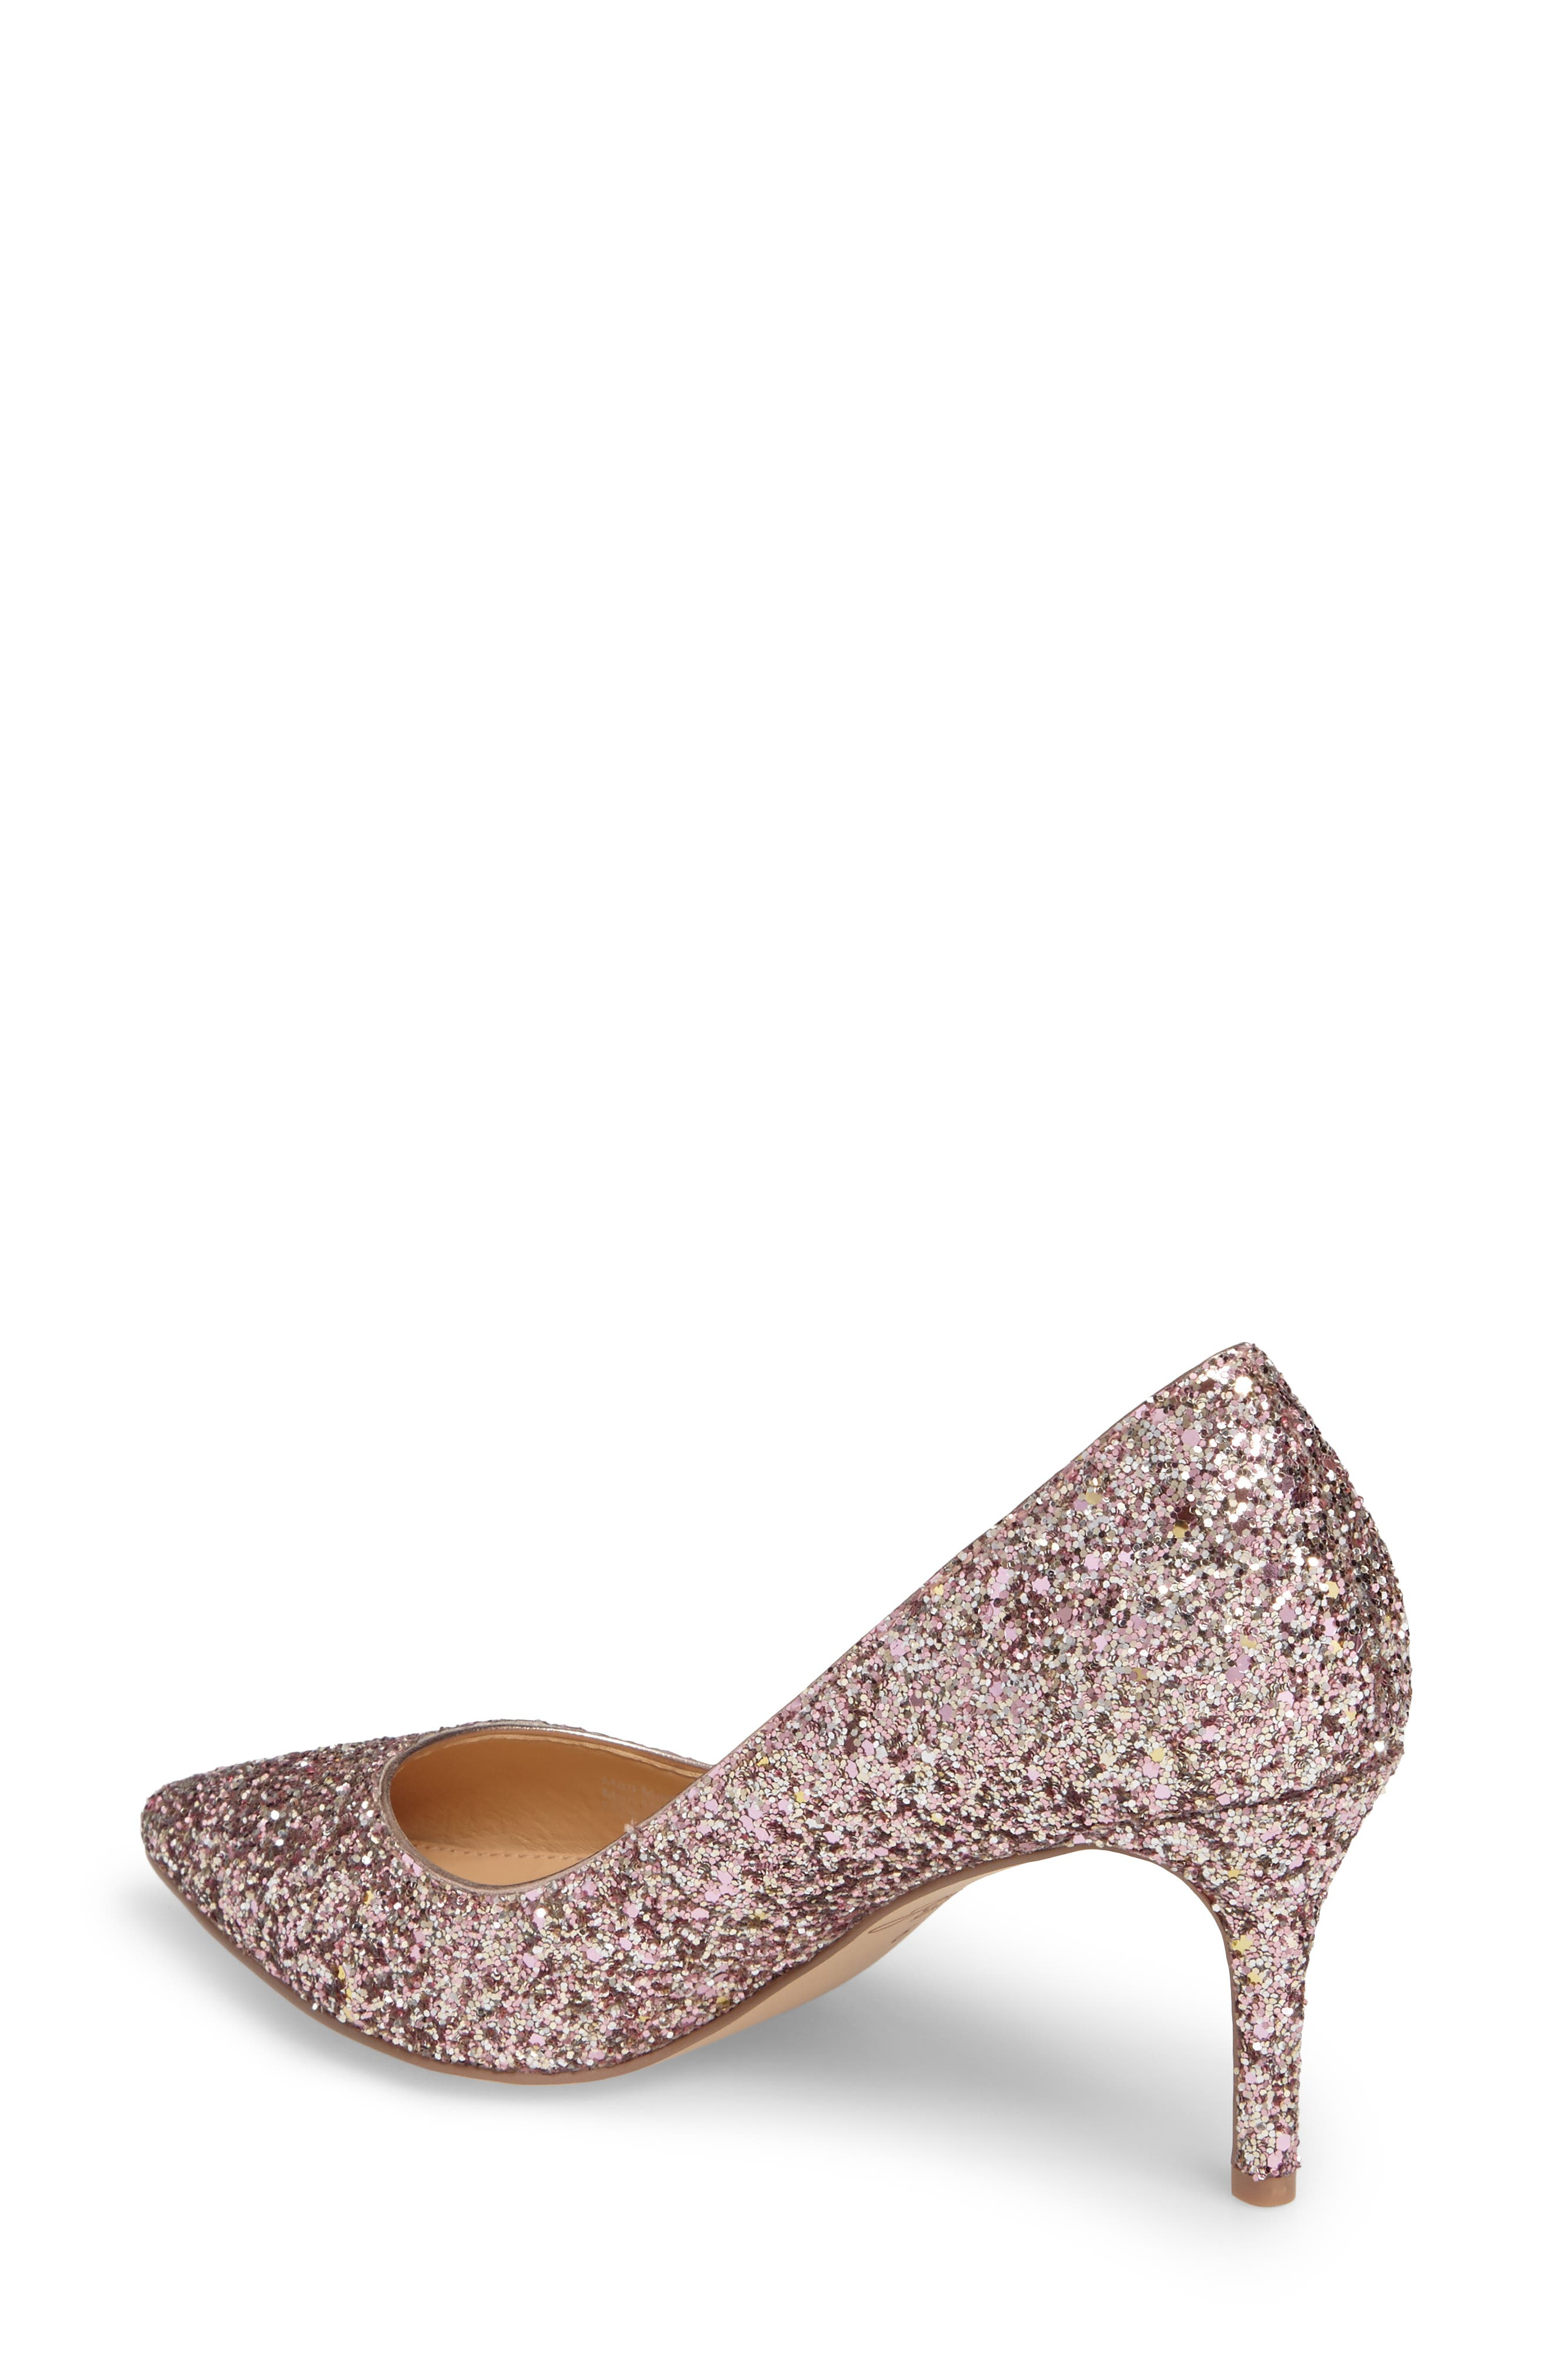 Lyla Glitter Pointy Toe Pump,                             Alternate thumbnail 2, color,                             ROSE GOLD